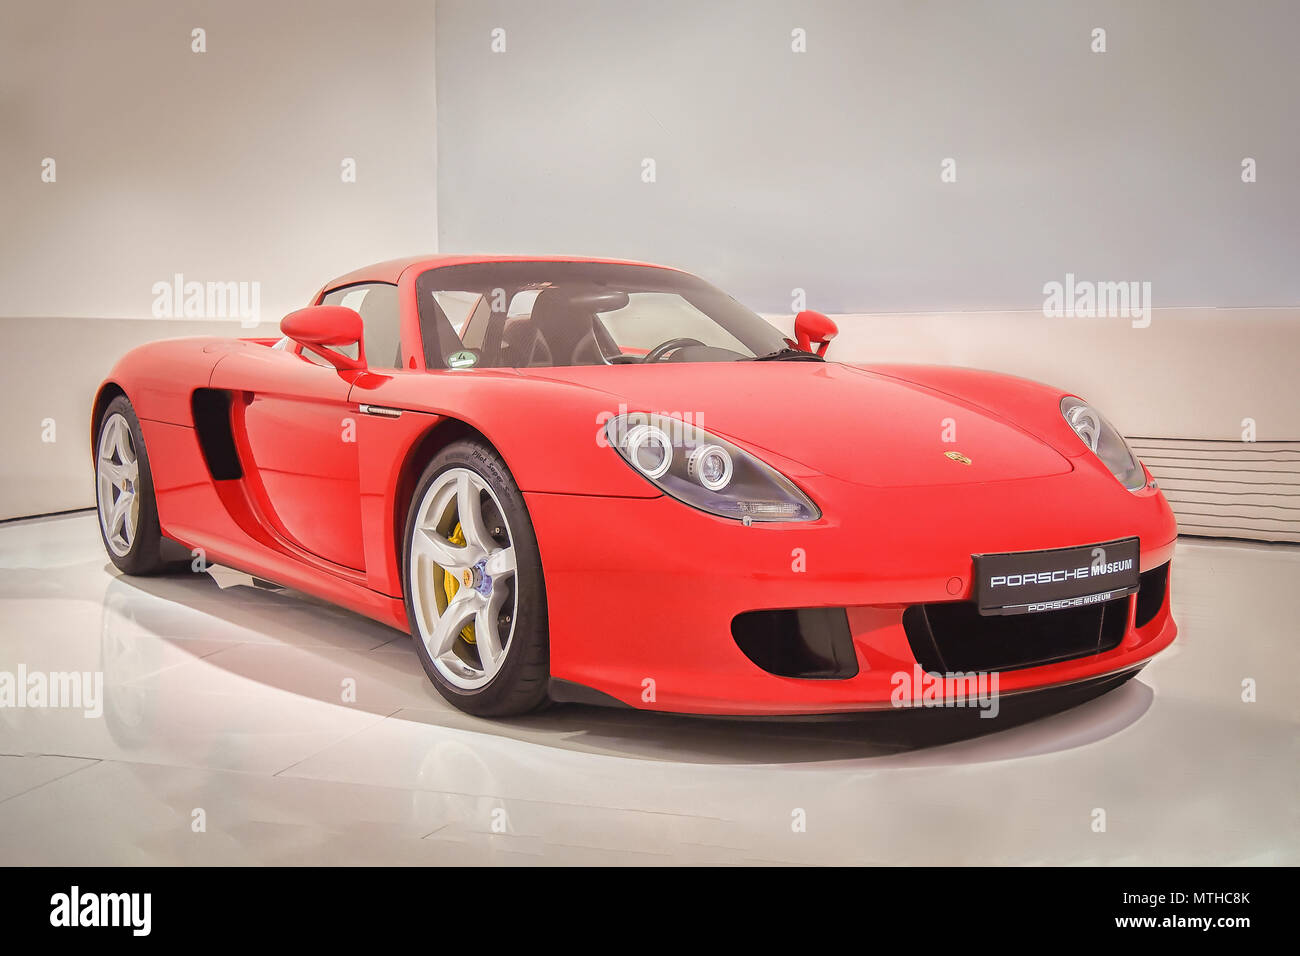 Stuttgart Germany April 7 2017 Red 2003 Porsche Carrera Gt In The Porsche Museum This Car Is The One Of The Most Valuable In The World Stock Photo Alamy